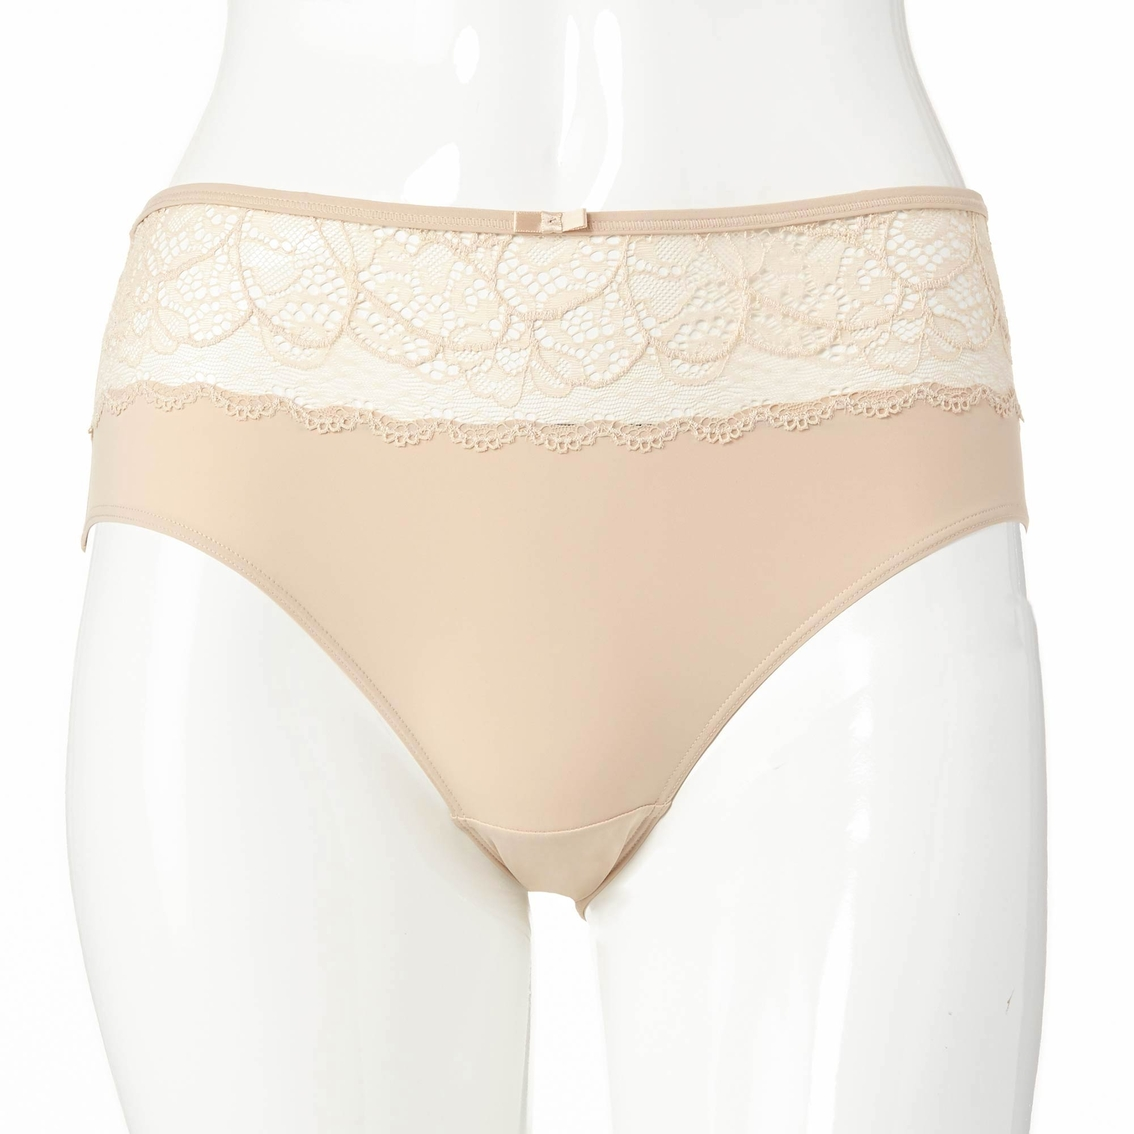 Lace panties online shopping